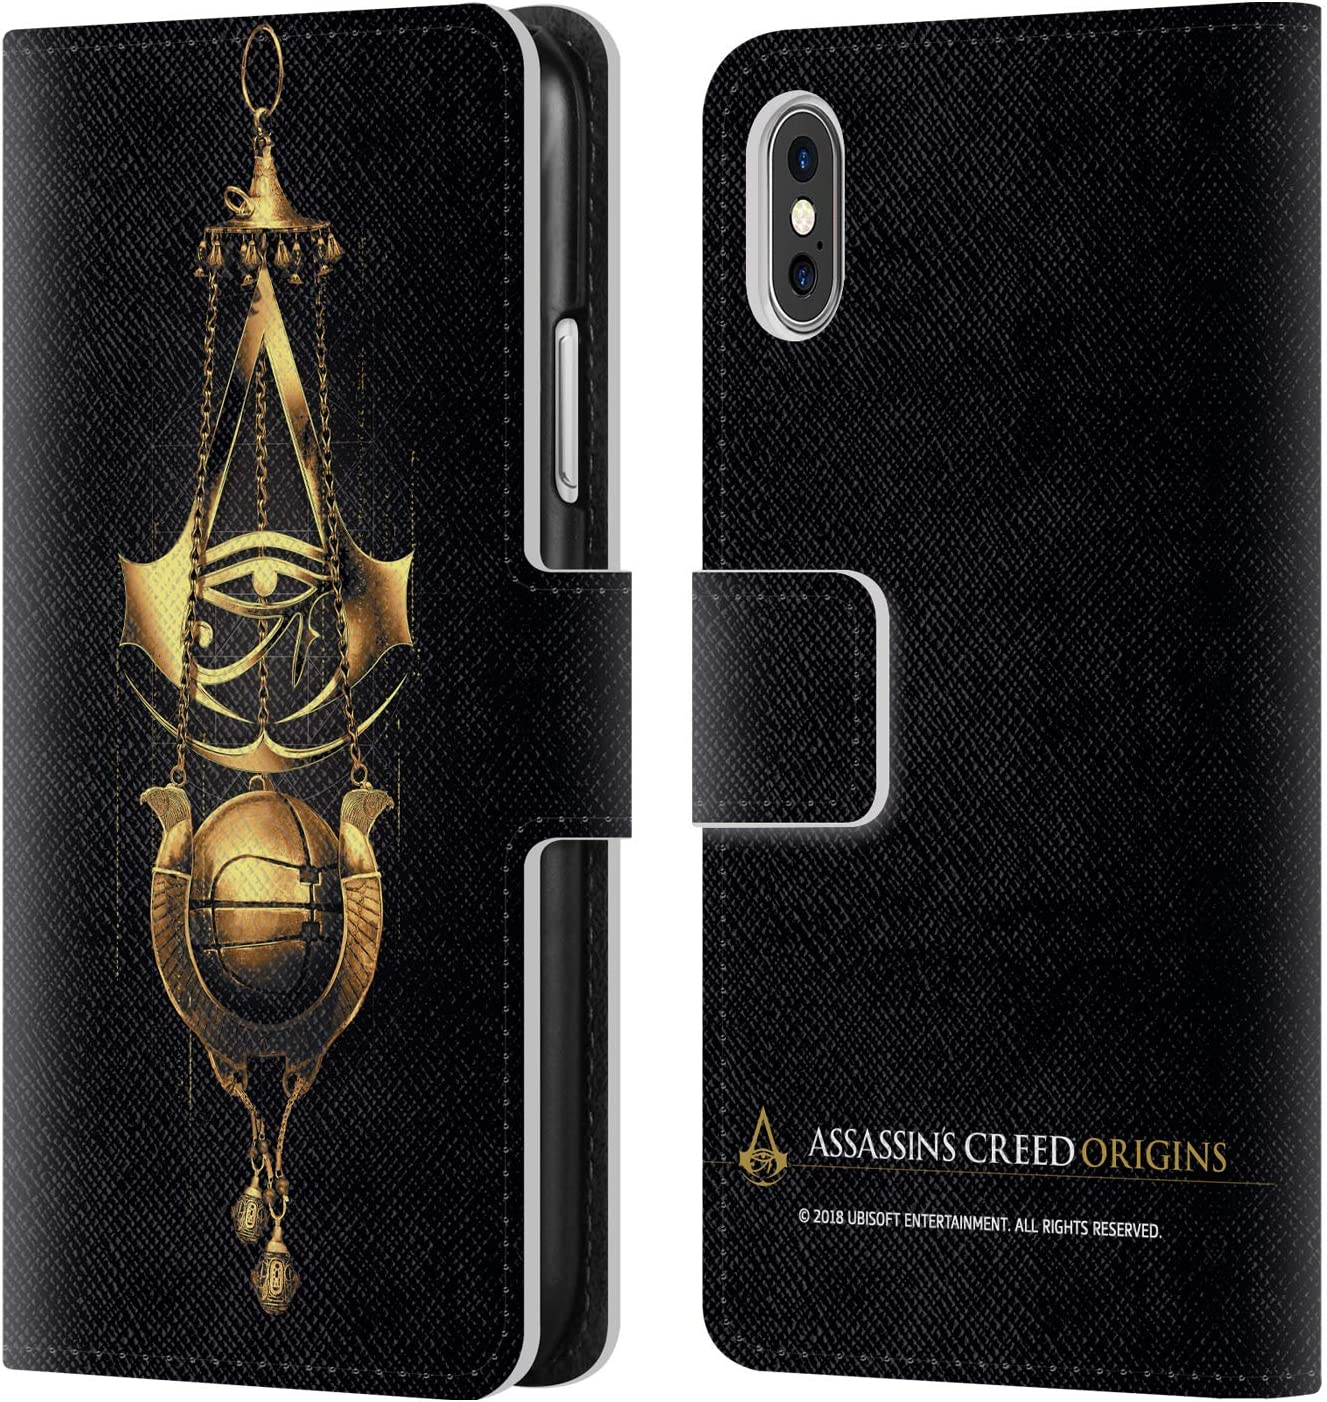 Head Case Designs Officially Licensed Assassin's Creed Piece of Eden Origins Crests Leather Book Wallet Case Cover Compatible with Apple iPhone X/iPhone Xs